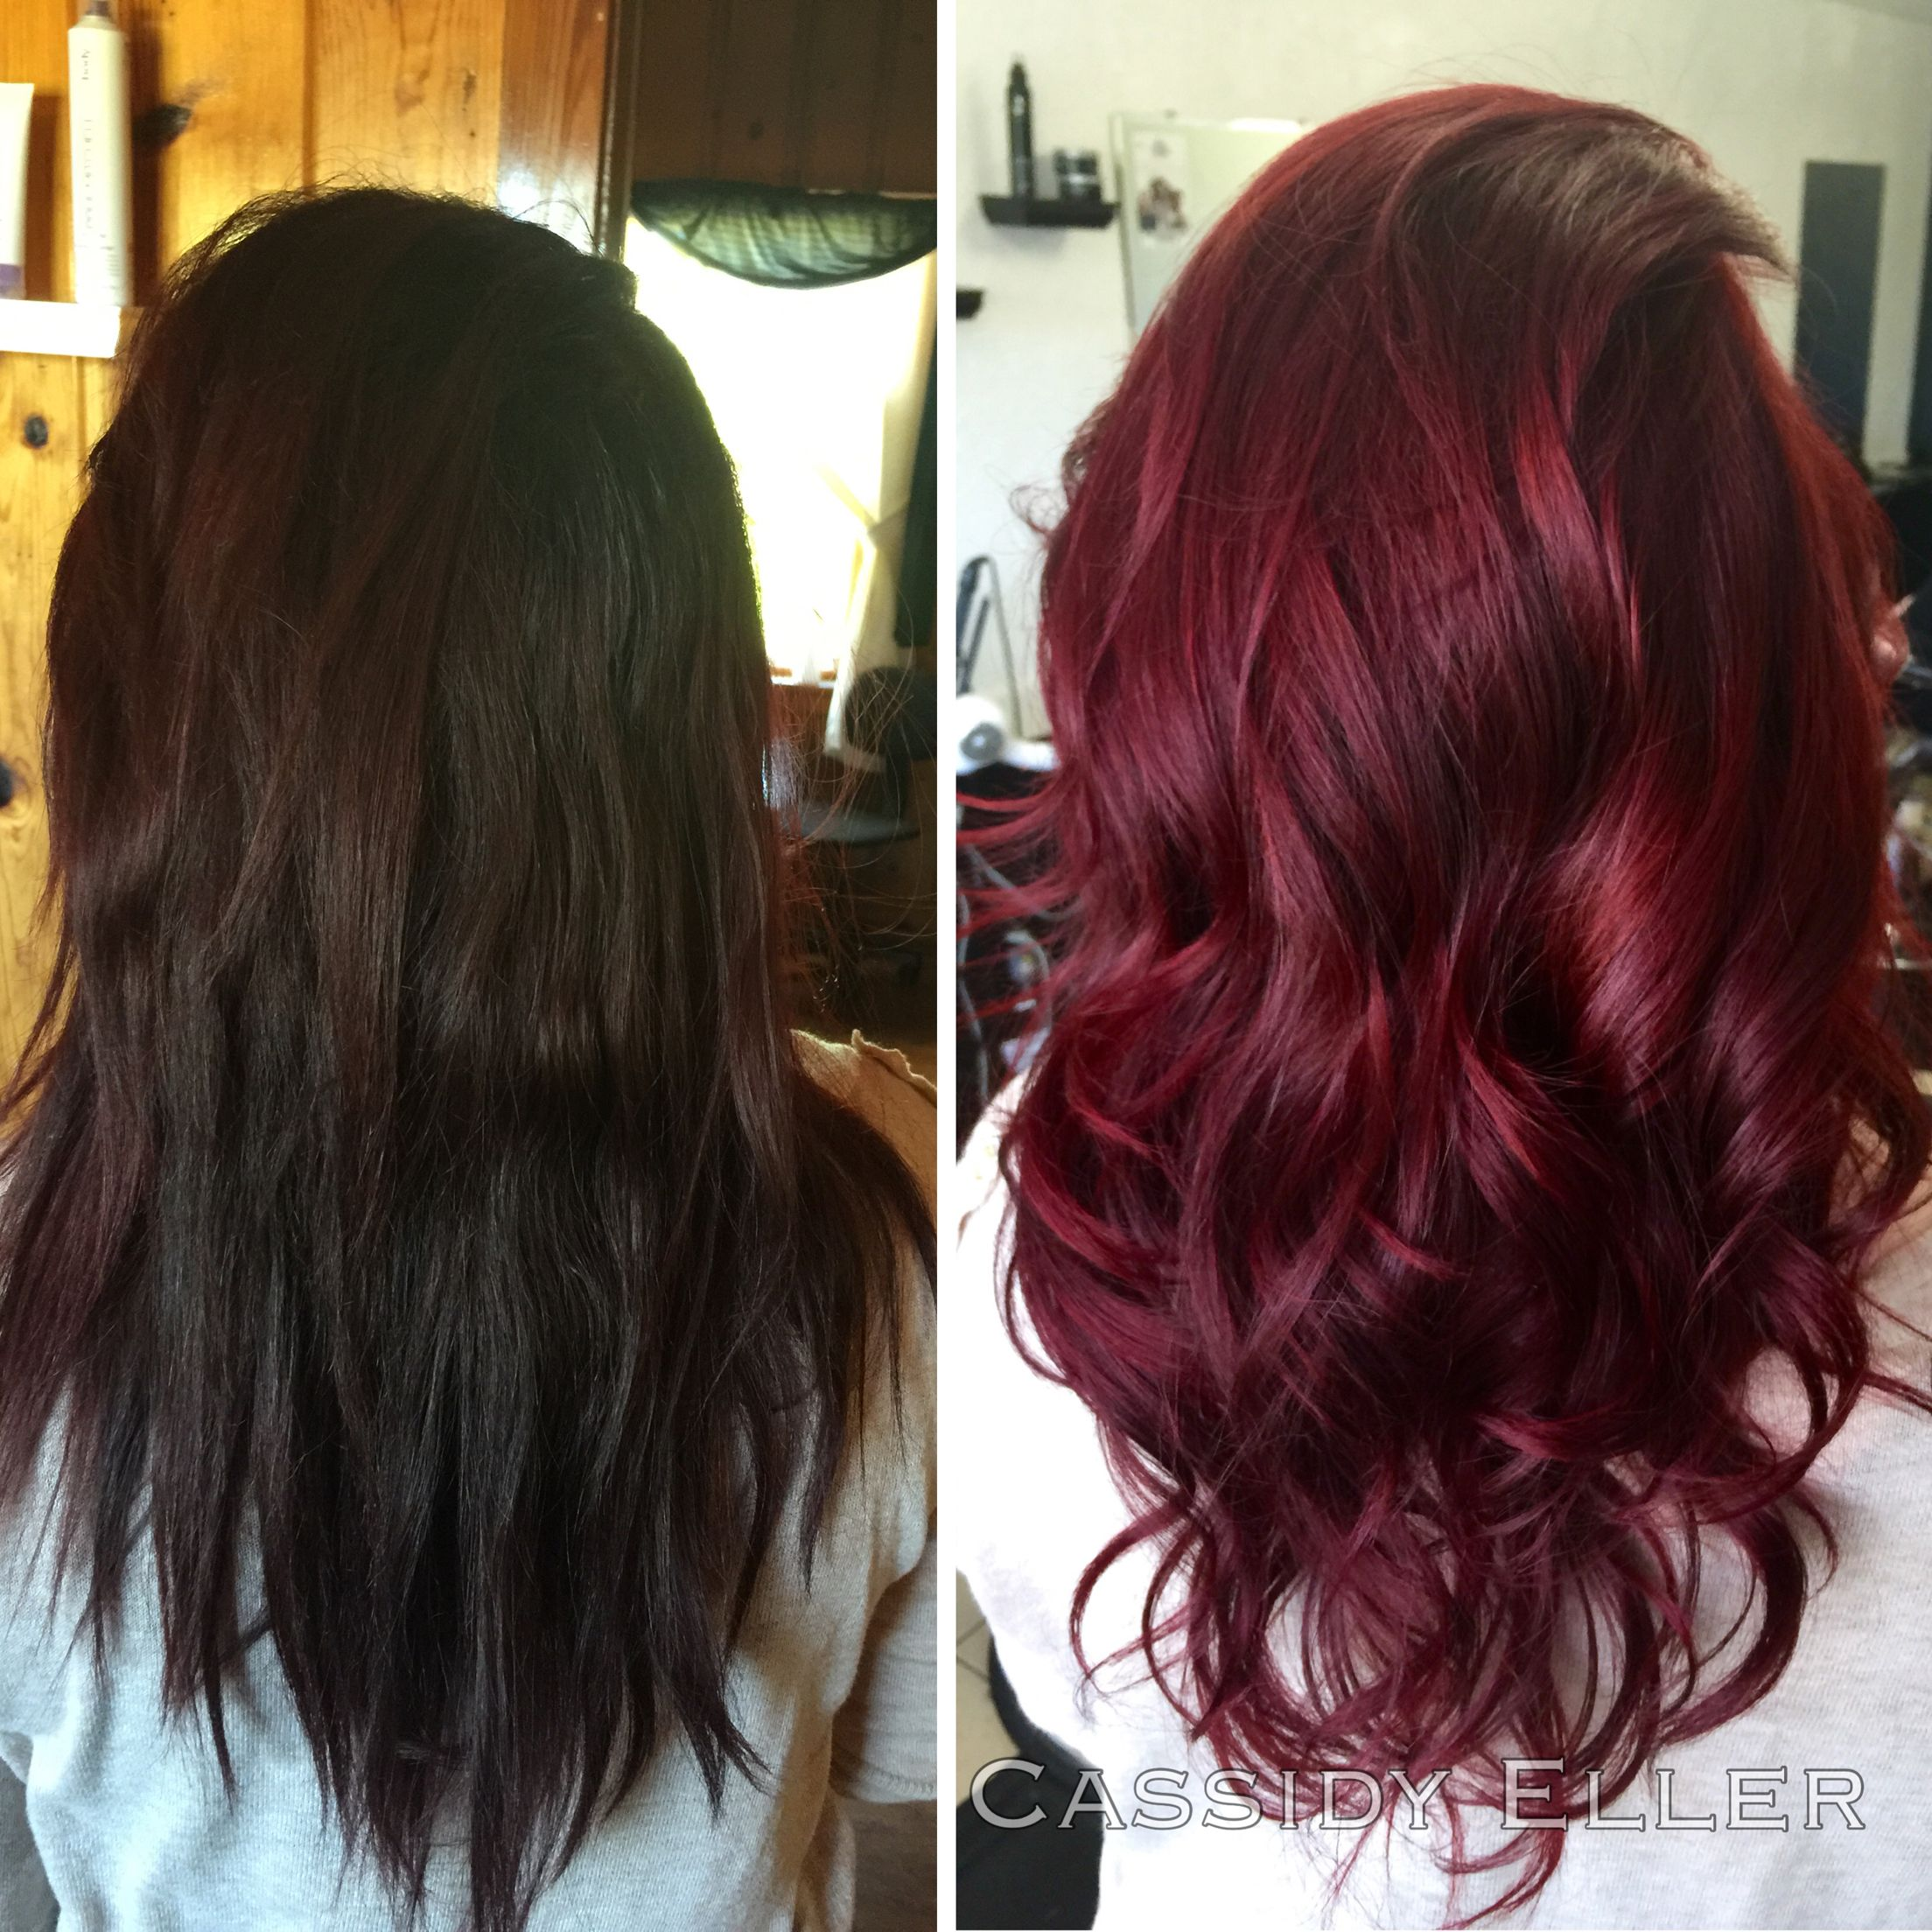 Before And After Brunette To Red Paul Mitchell The Color Joico Intensities Wine Hair Hair Color Burgundy Hair Color Shades